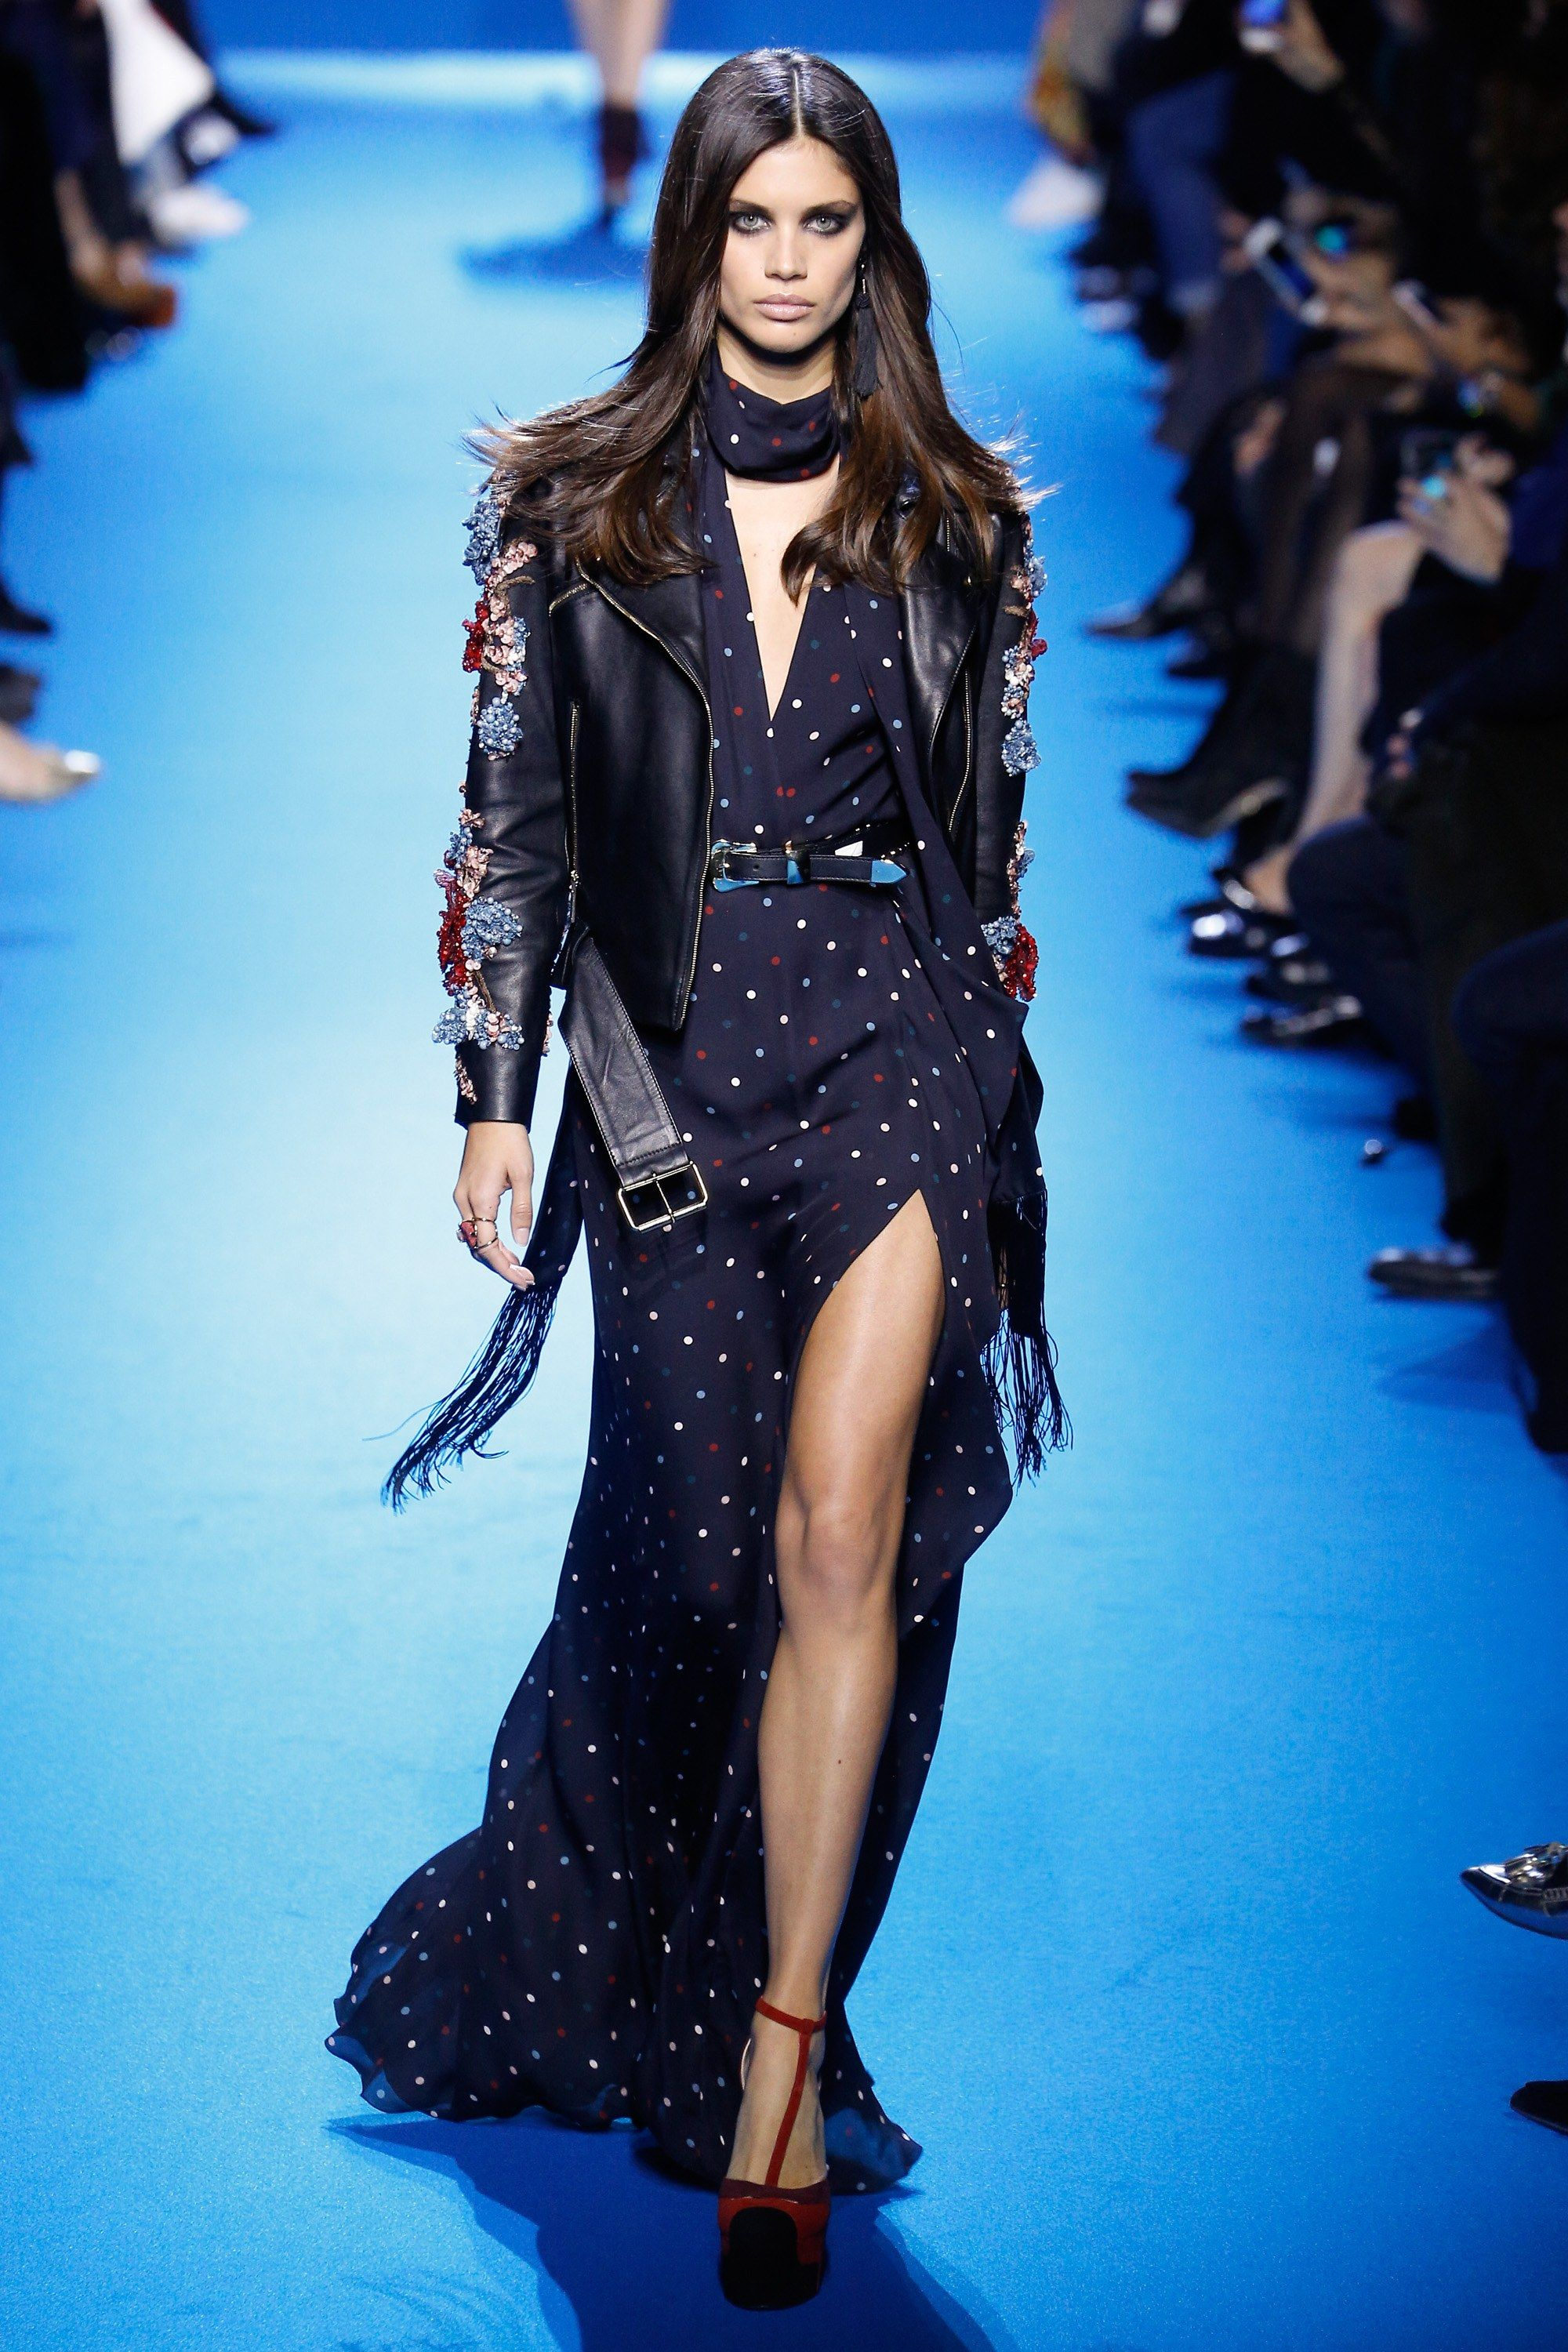 http://www.vogue.com/fashion-shows/fall-2016-ready-to-wear/elie-saab/slideshow/collection